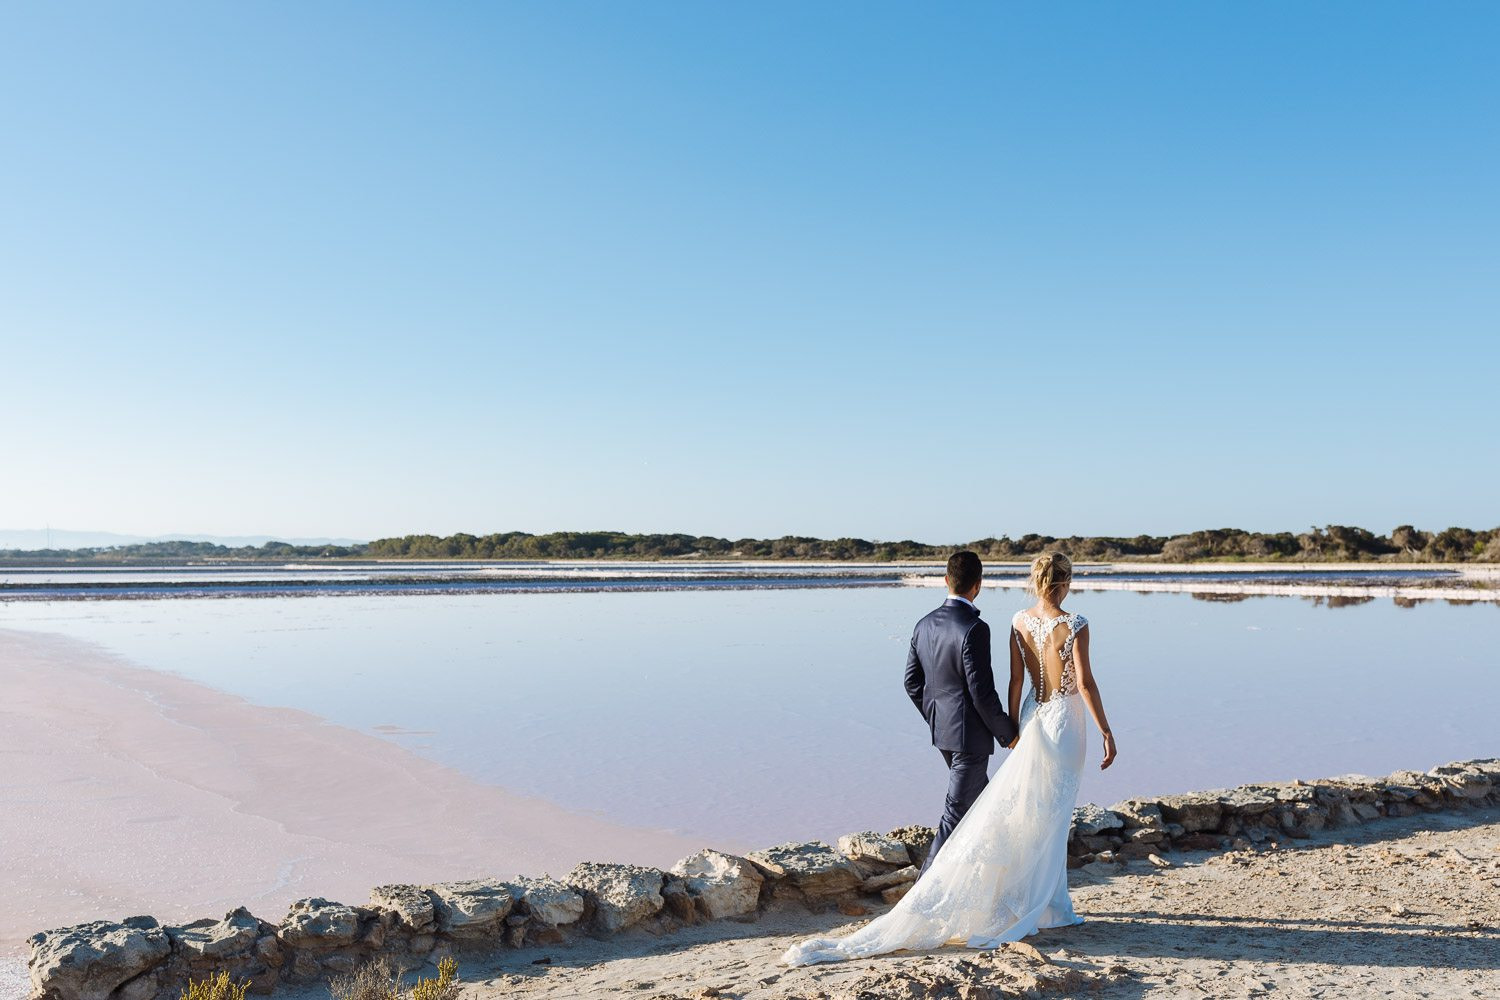 Luca Vieri Wedding Photographer Formentera Ses Salines